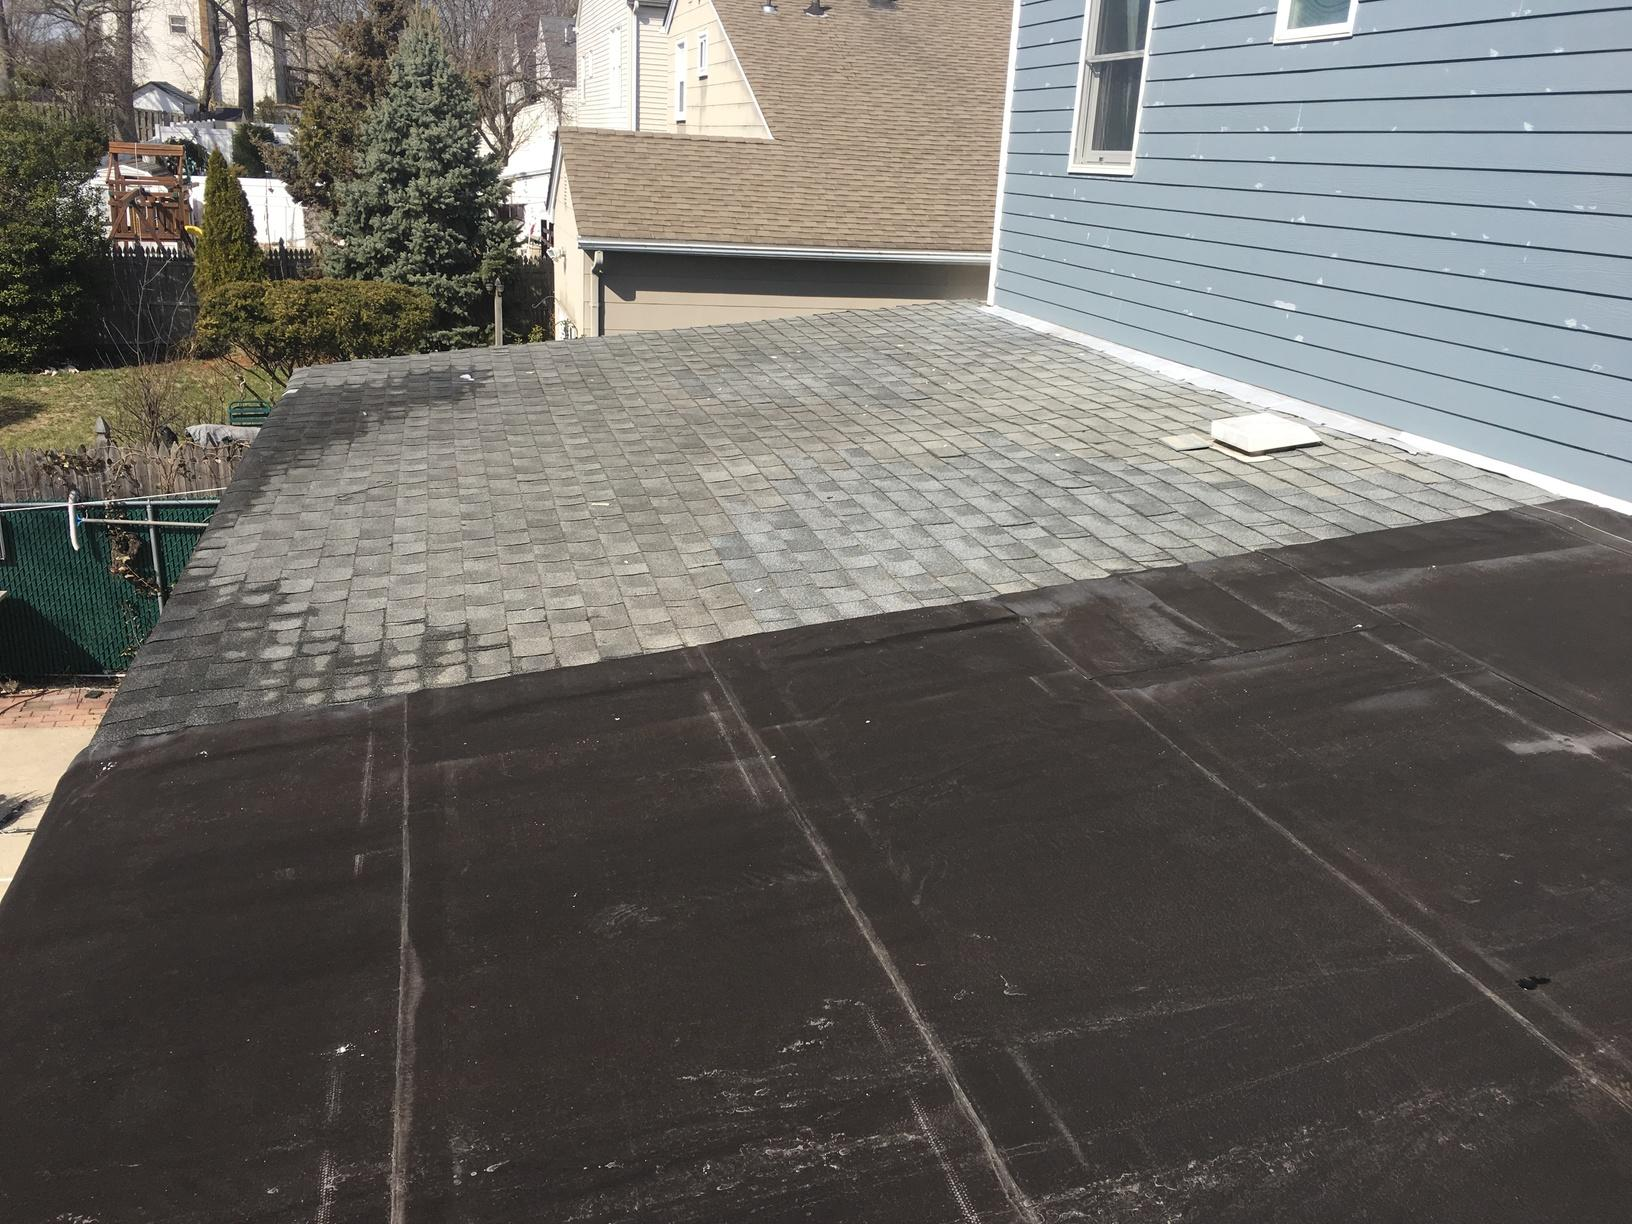 Old Asphalt Roof the Needs Replacement